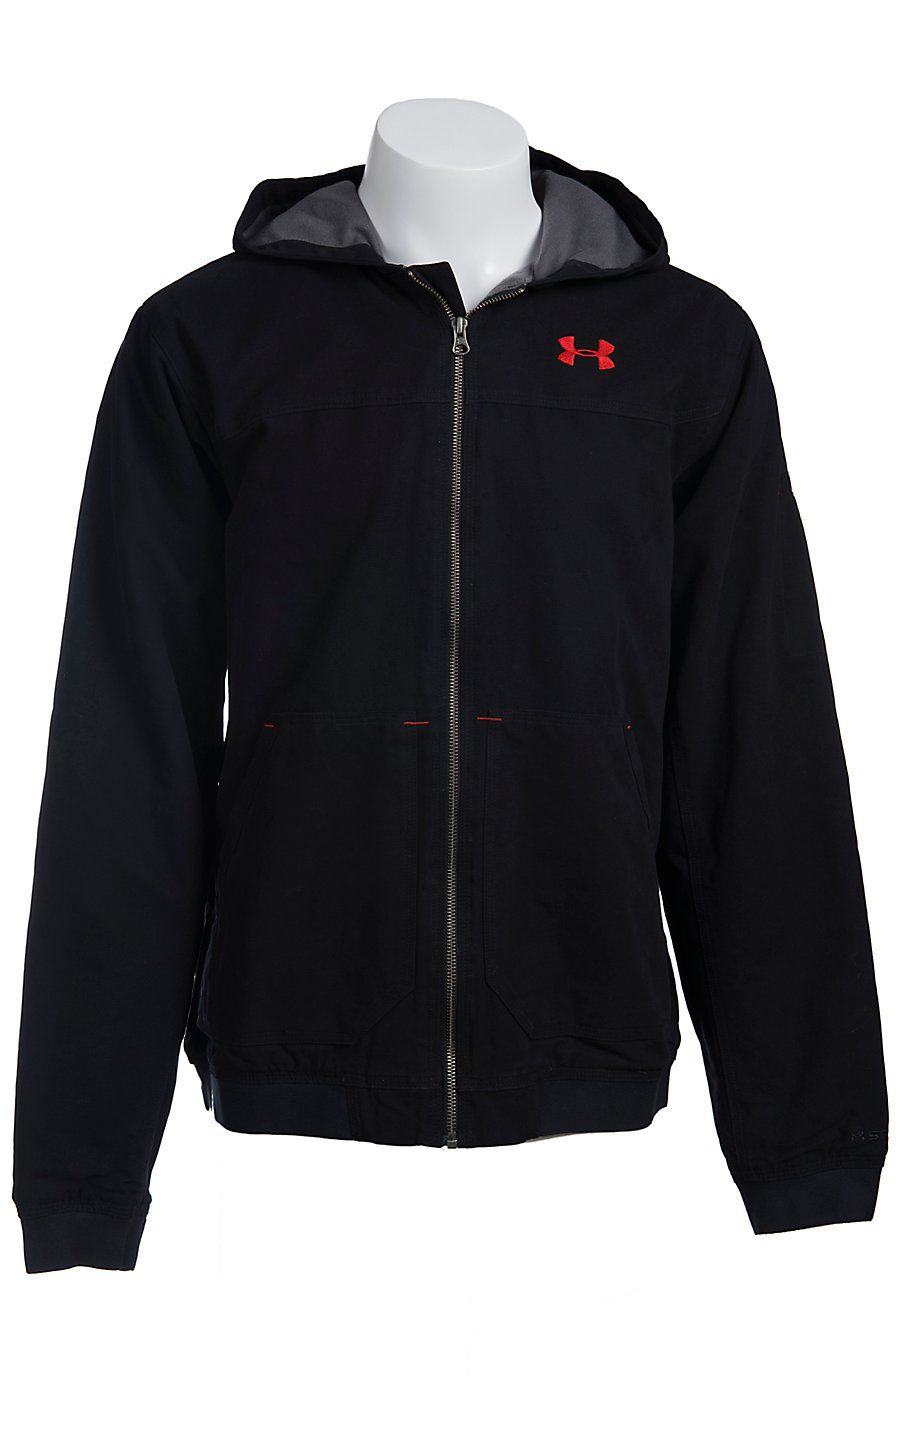 innovative design a234e 4555a Under Armour® Men s Black UA Burley Hooded Jacket 1238347001